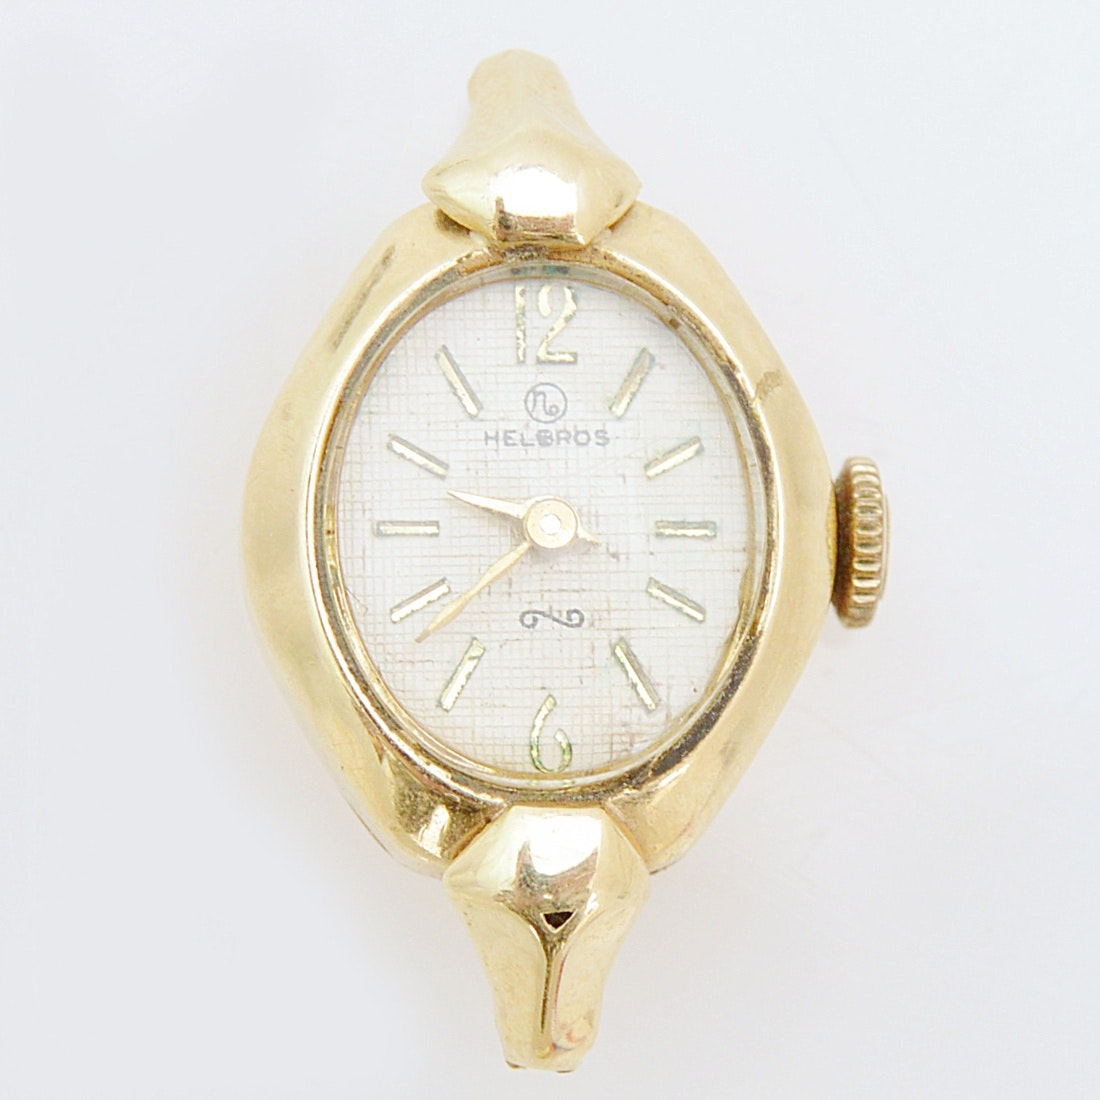 Vintage Helbros 14K Yellow Gold Wristwatch